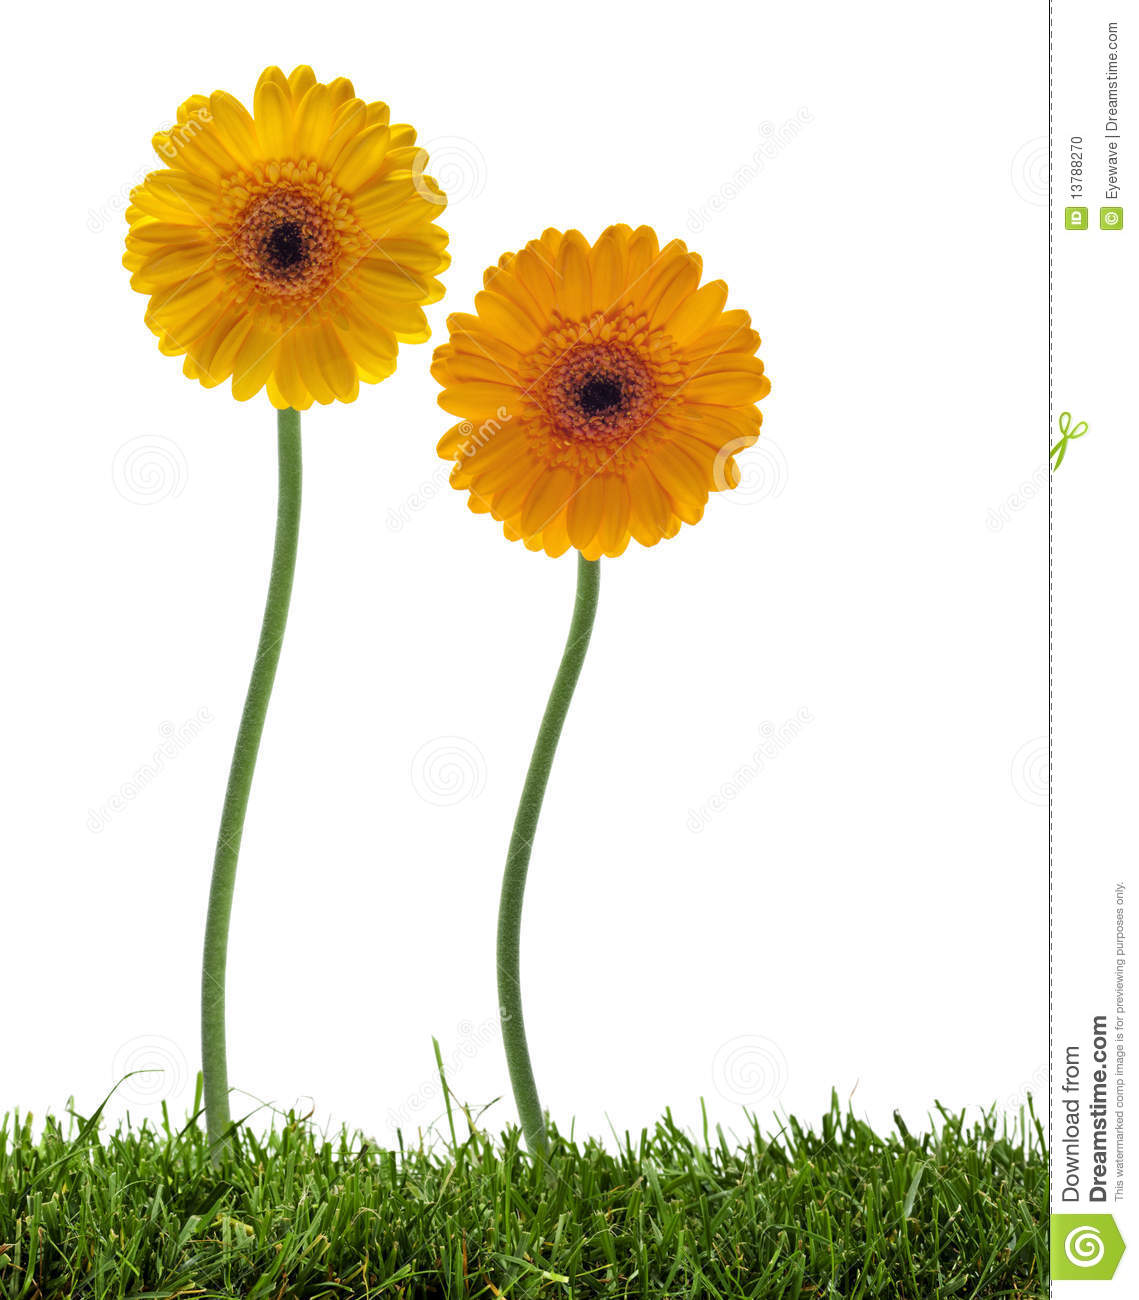 Dancing daisies on the lawn stock photo image of stem gerber dancing daisies on the lawn izmirmasajfo